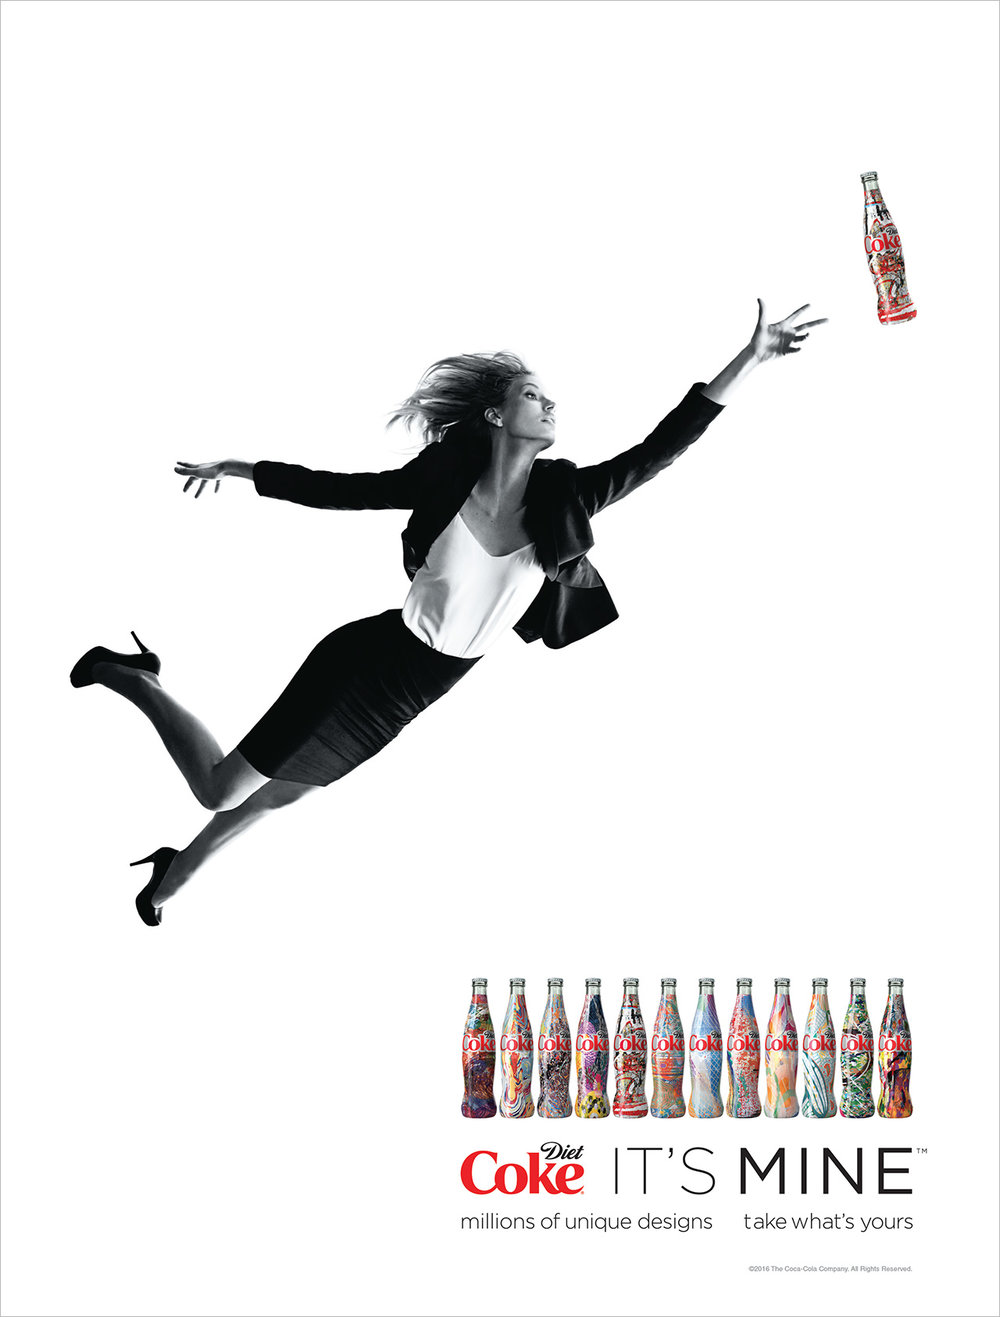 Diet Coke It's Mine, Social Campaign, 2015